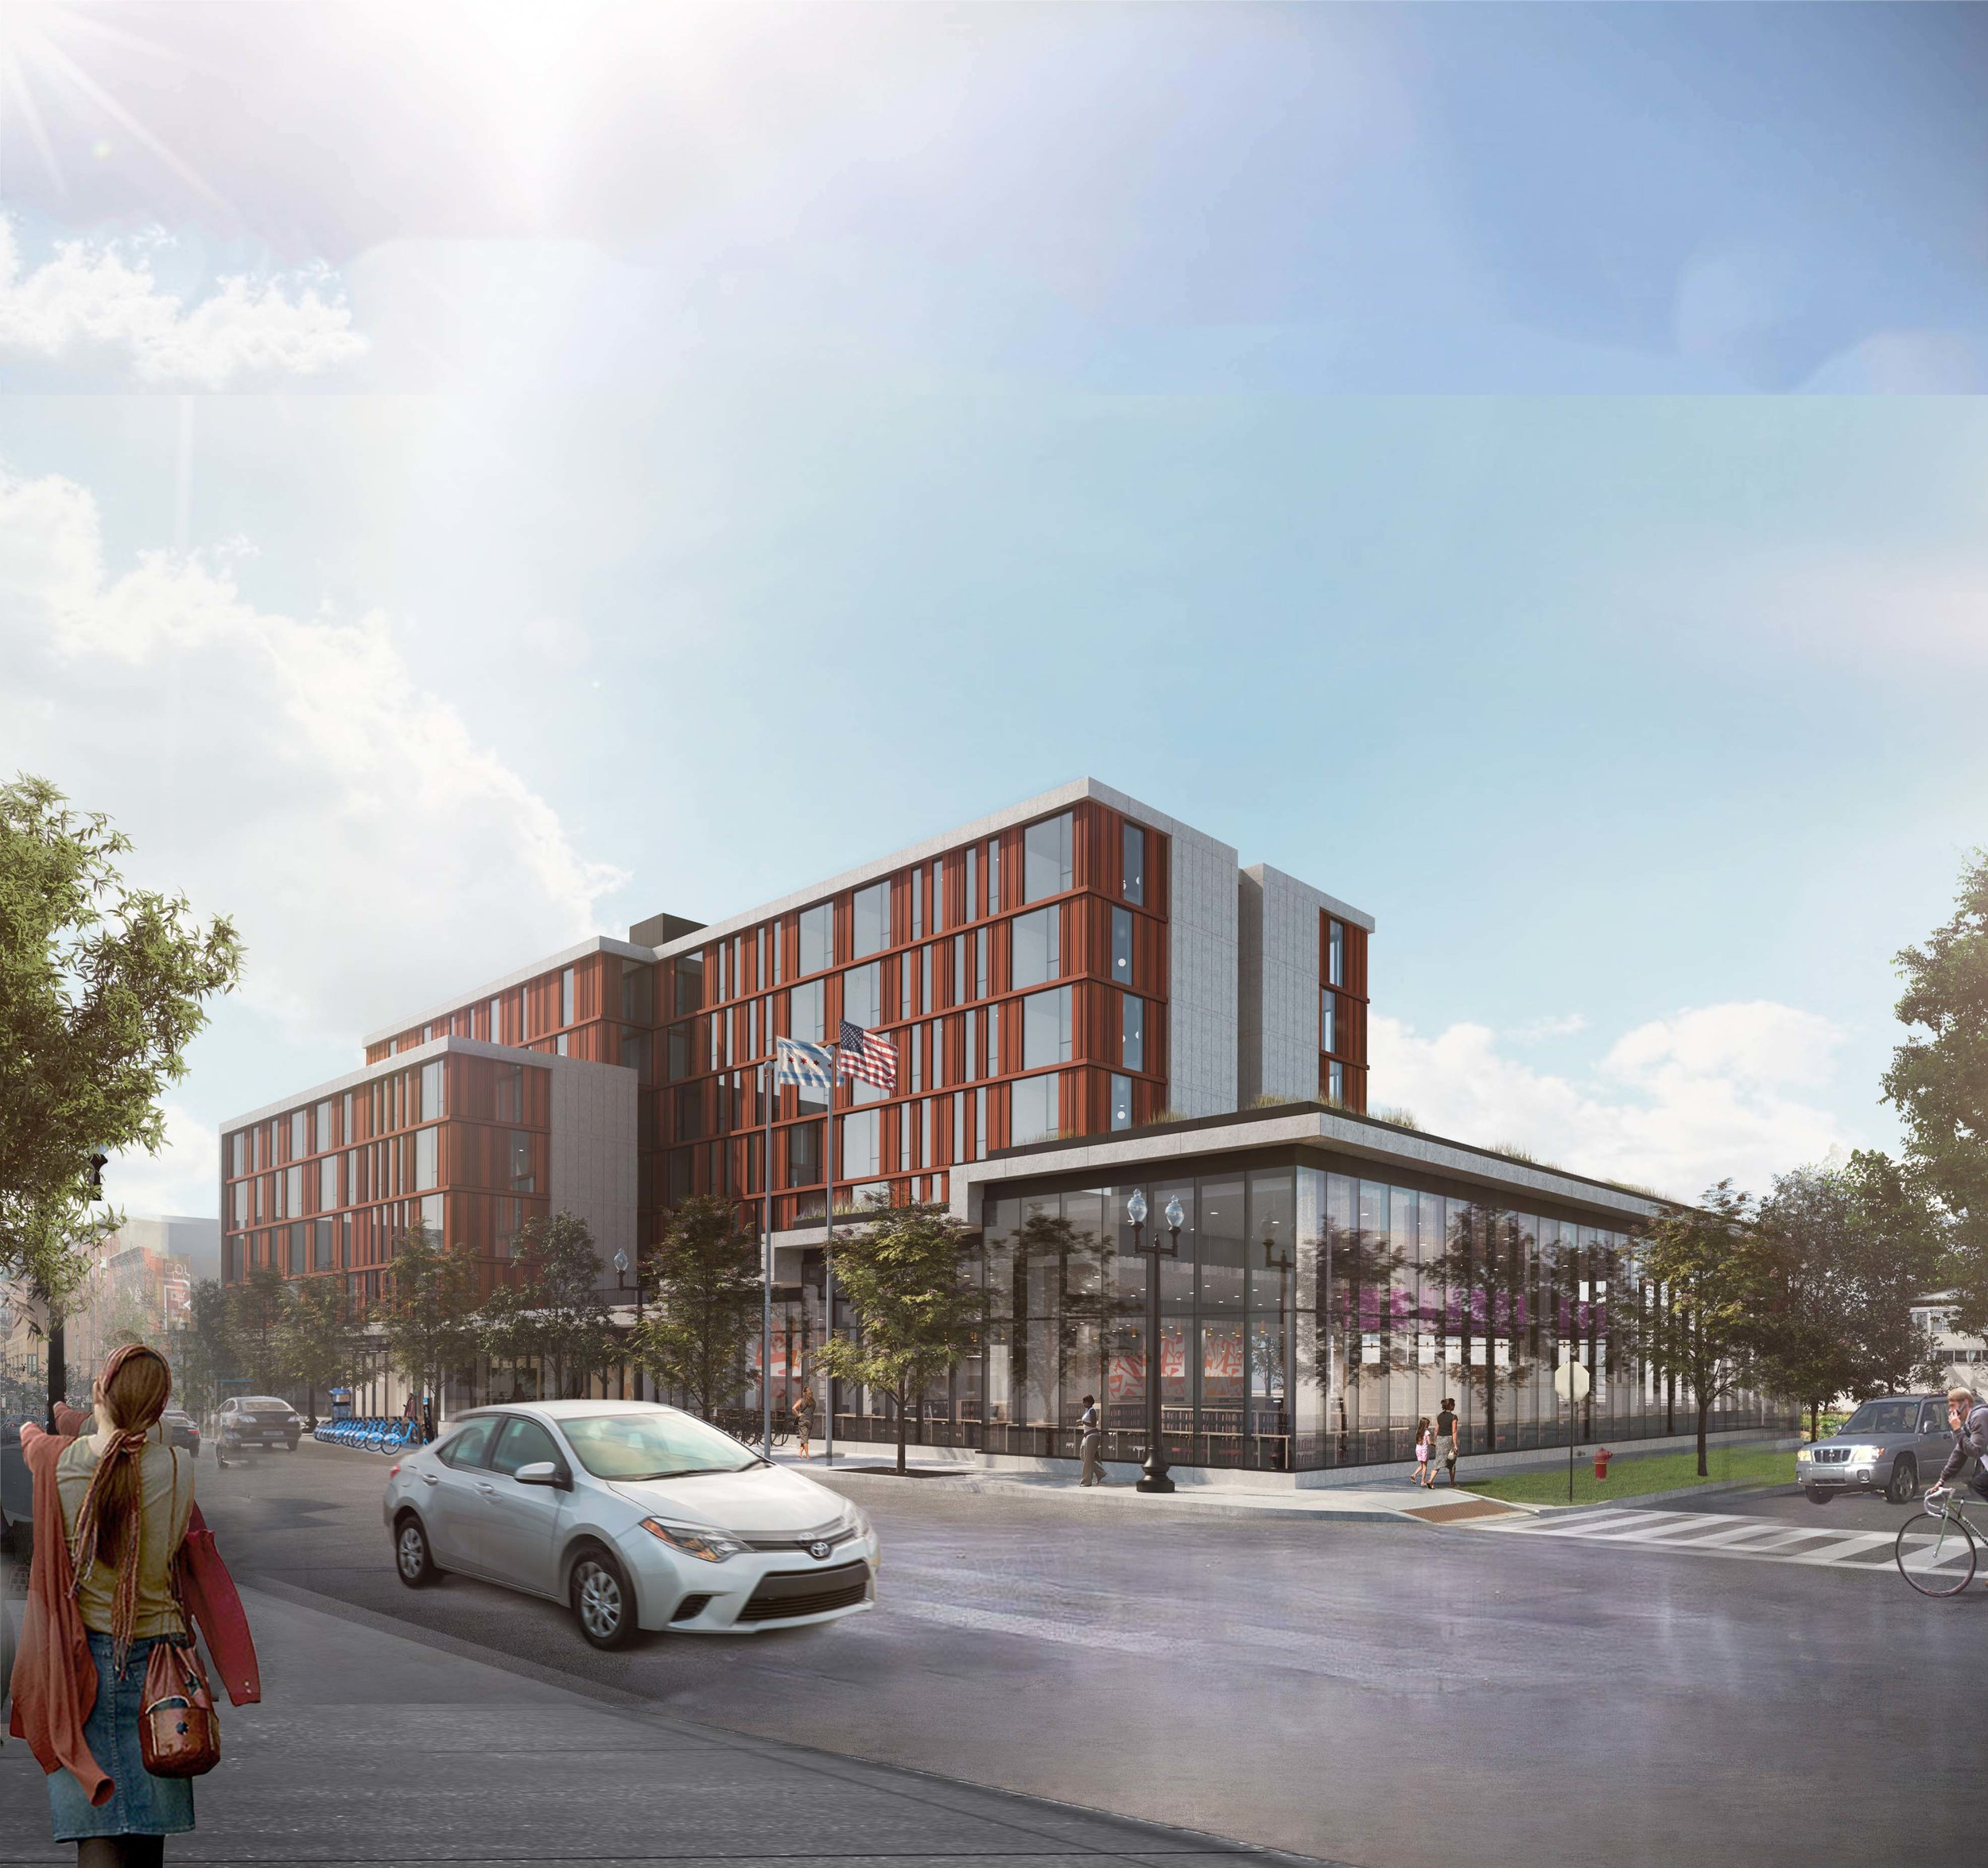 Taylor Street Library, Chicago, IL, to be completed December, 2018   Role: Technical Architect and Designer